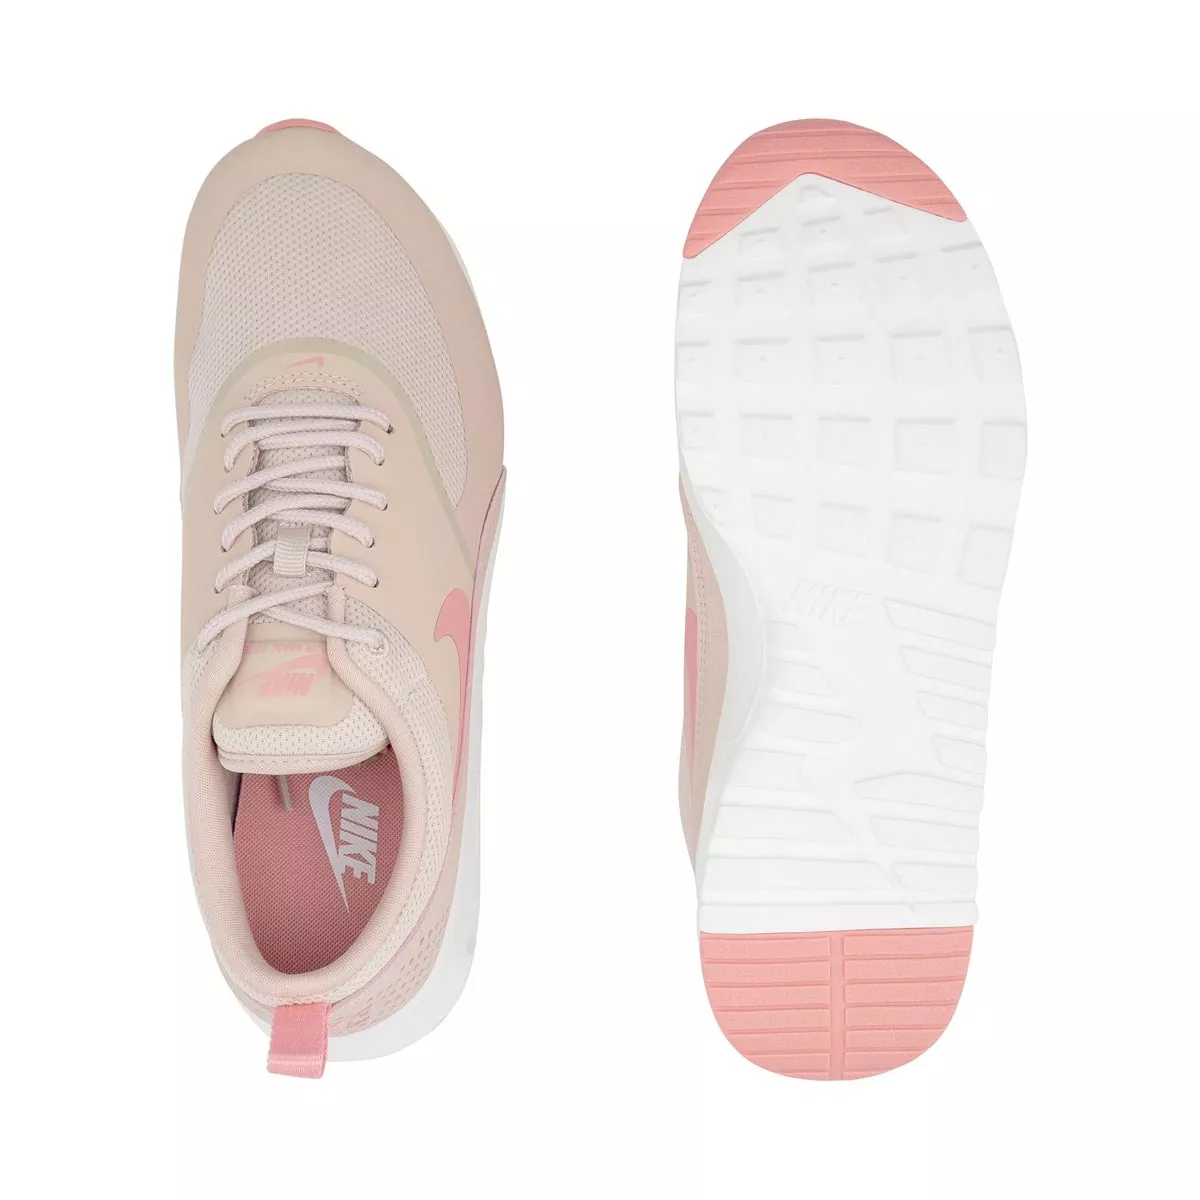 Details about Nike Air Max Thea Women's shoe Pink OxfordBright MelonWhite